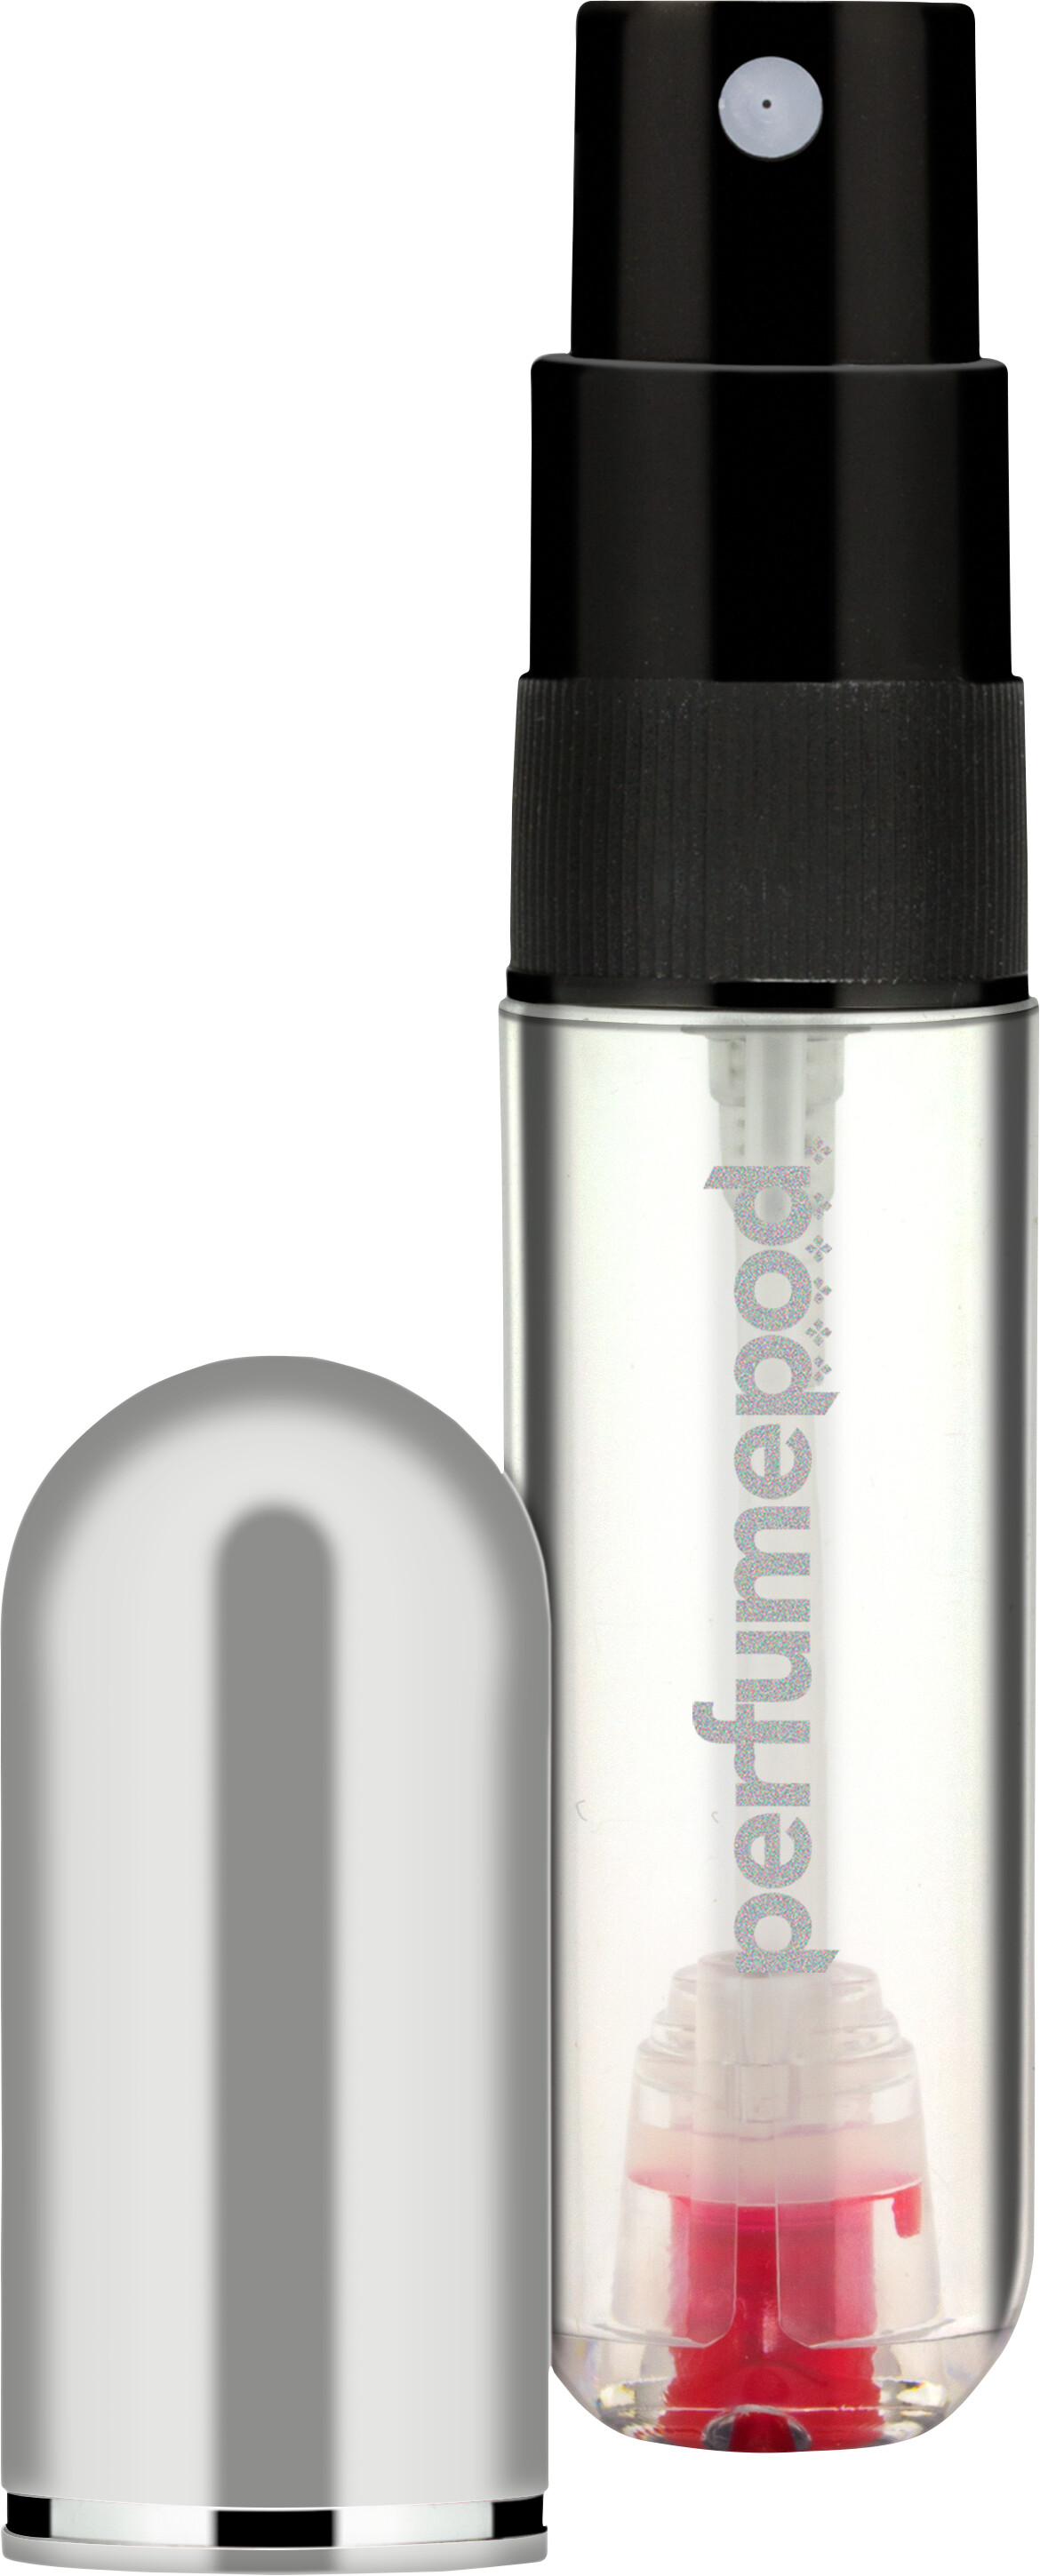 Travalo Perfume Pod Spray Silver